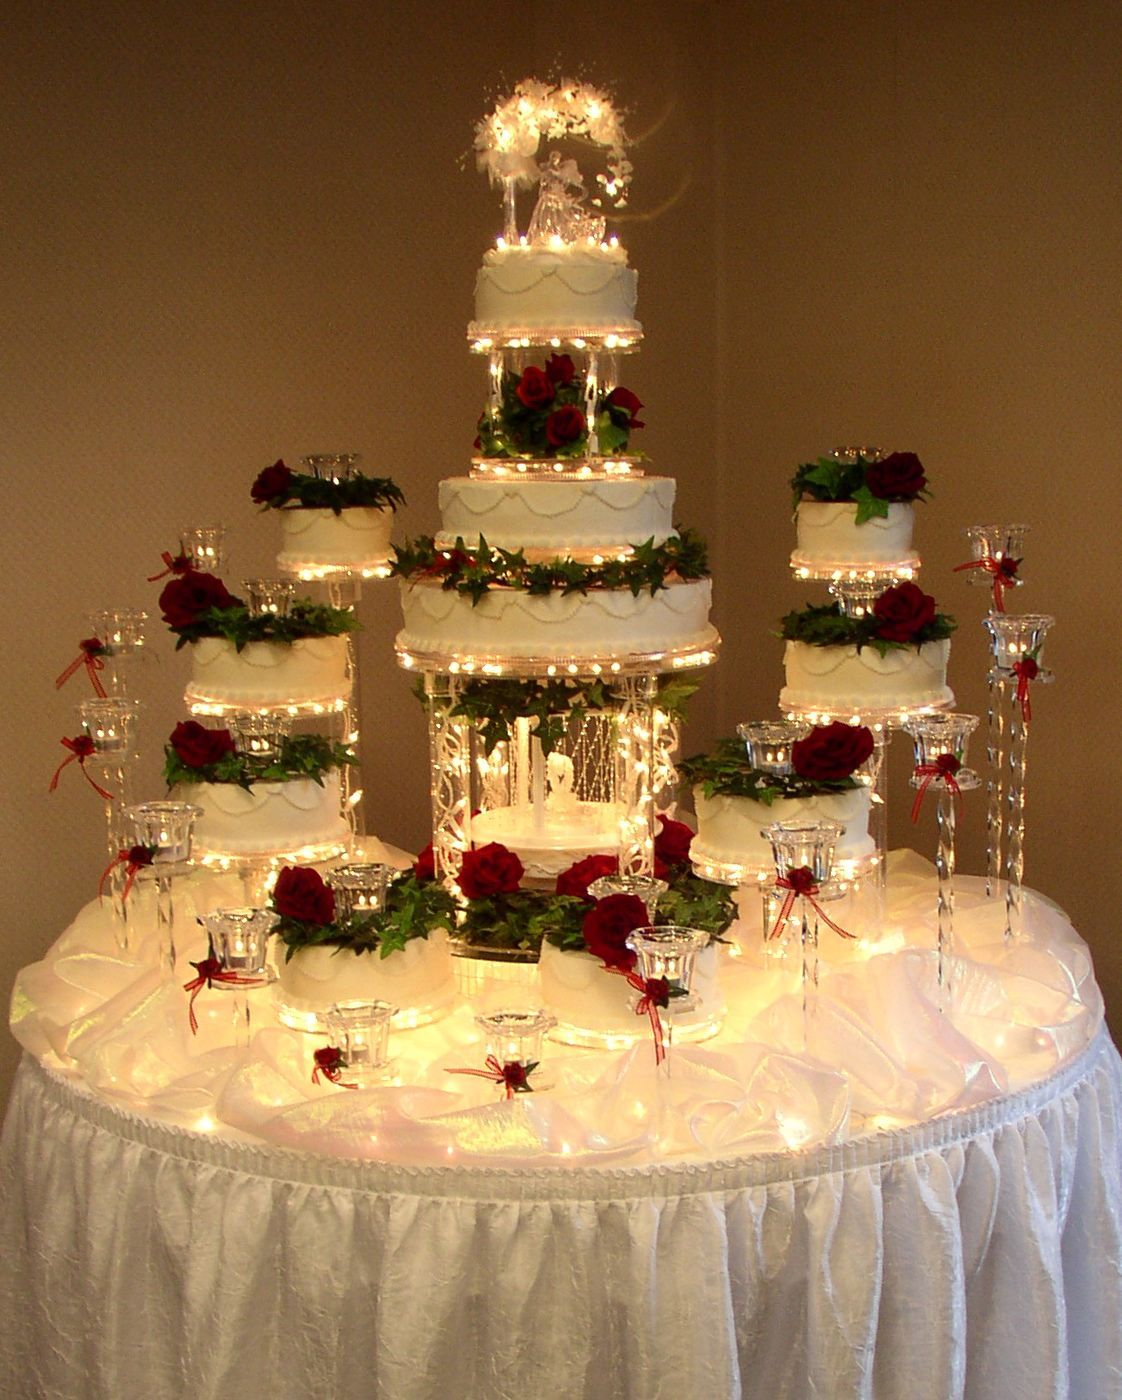 WOW that's a big wedding with that much cake! Fountain